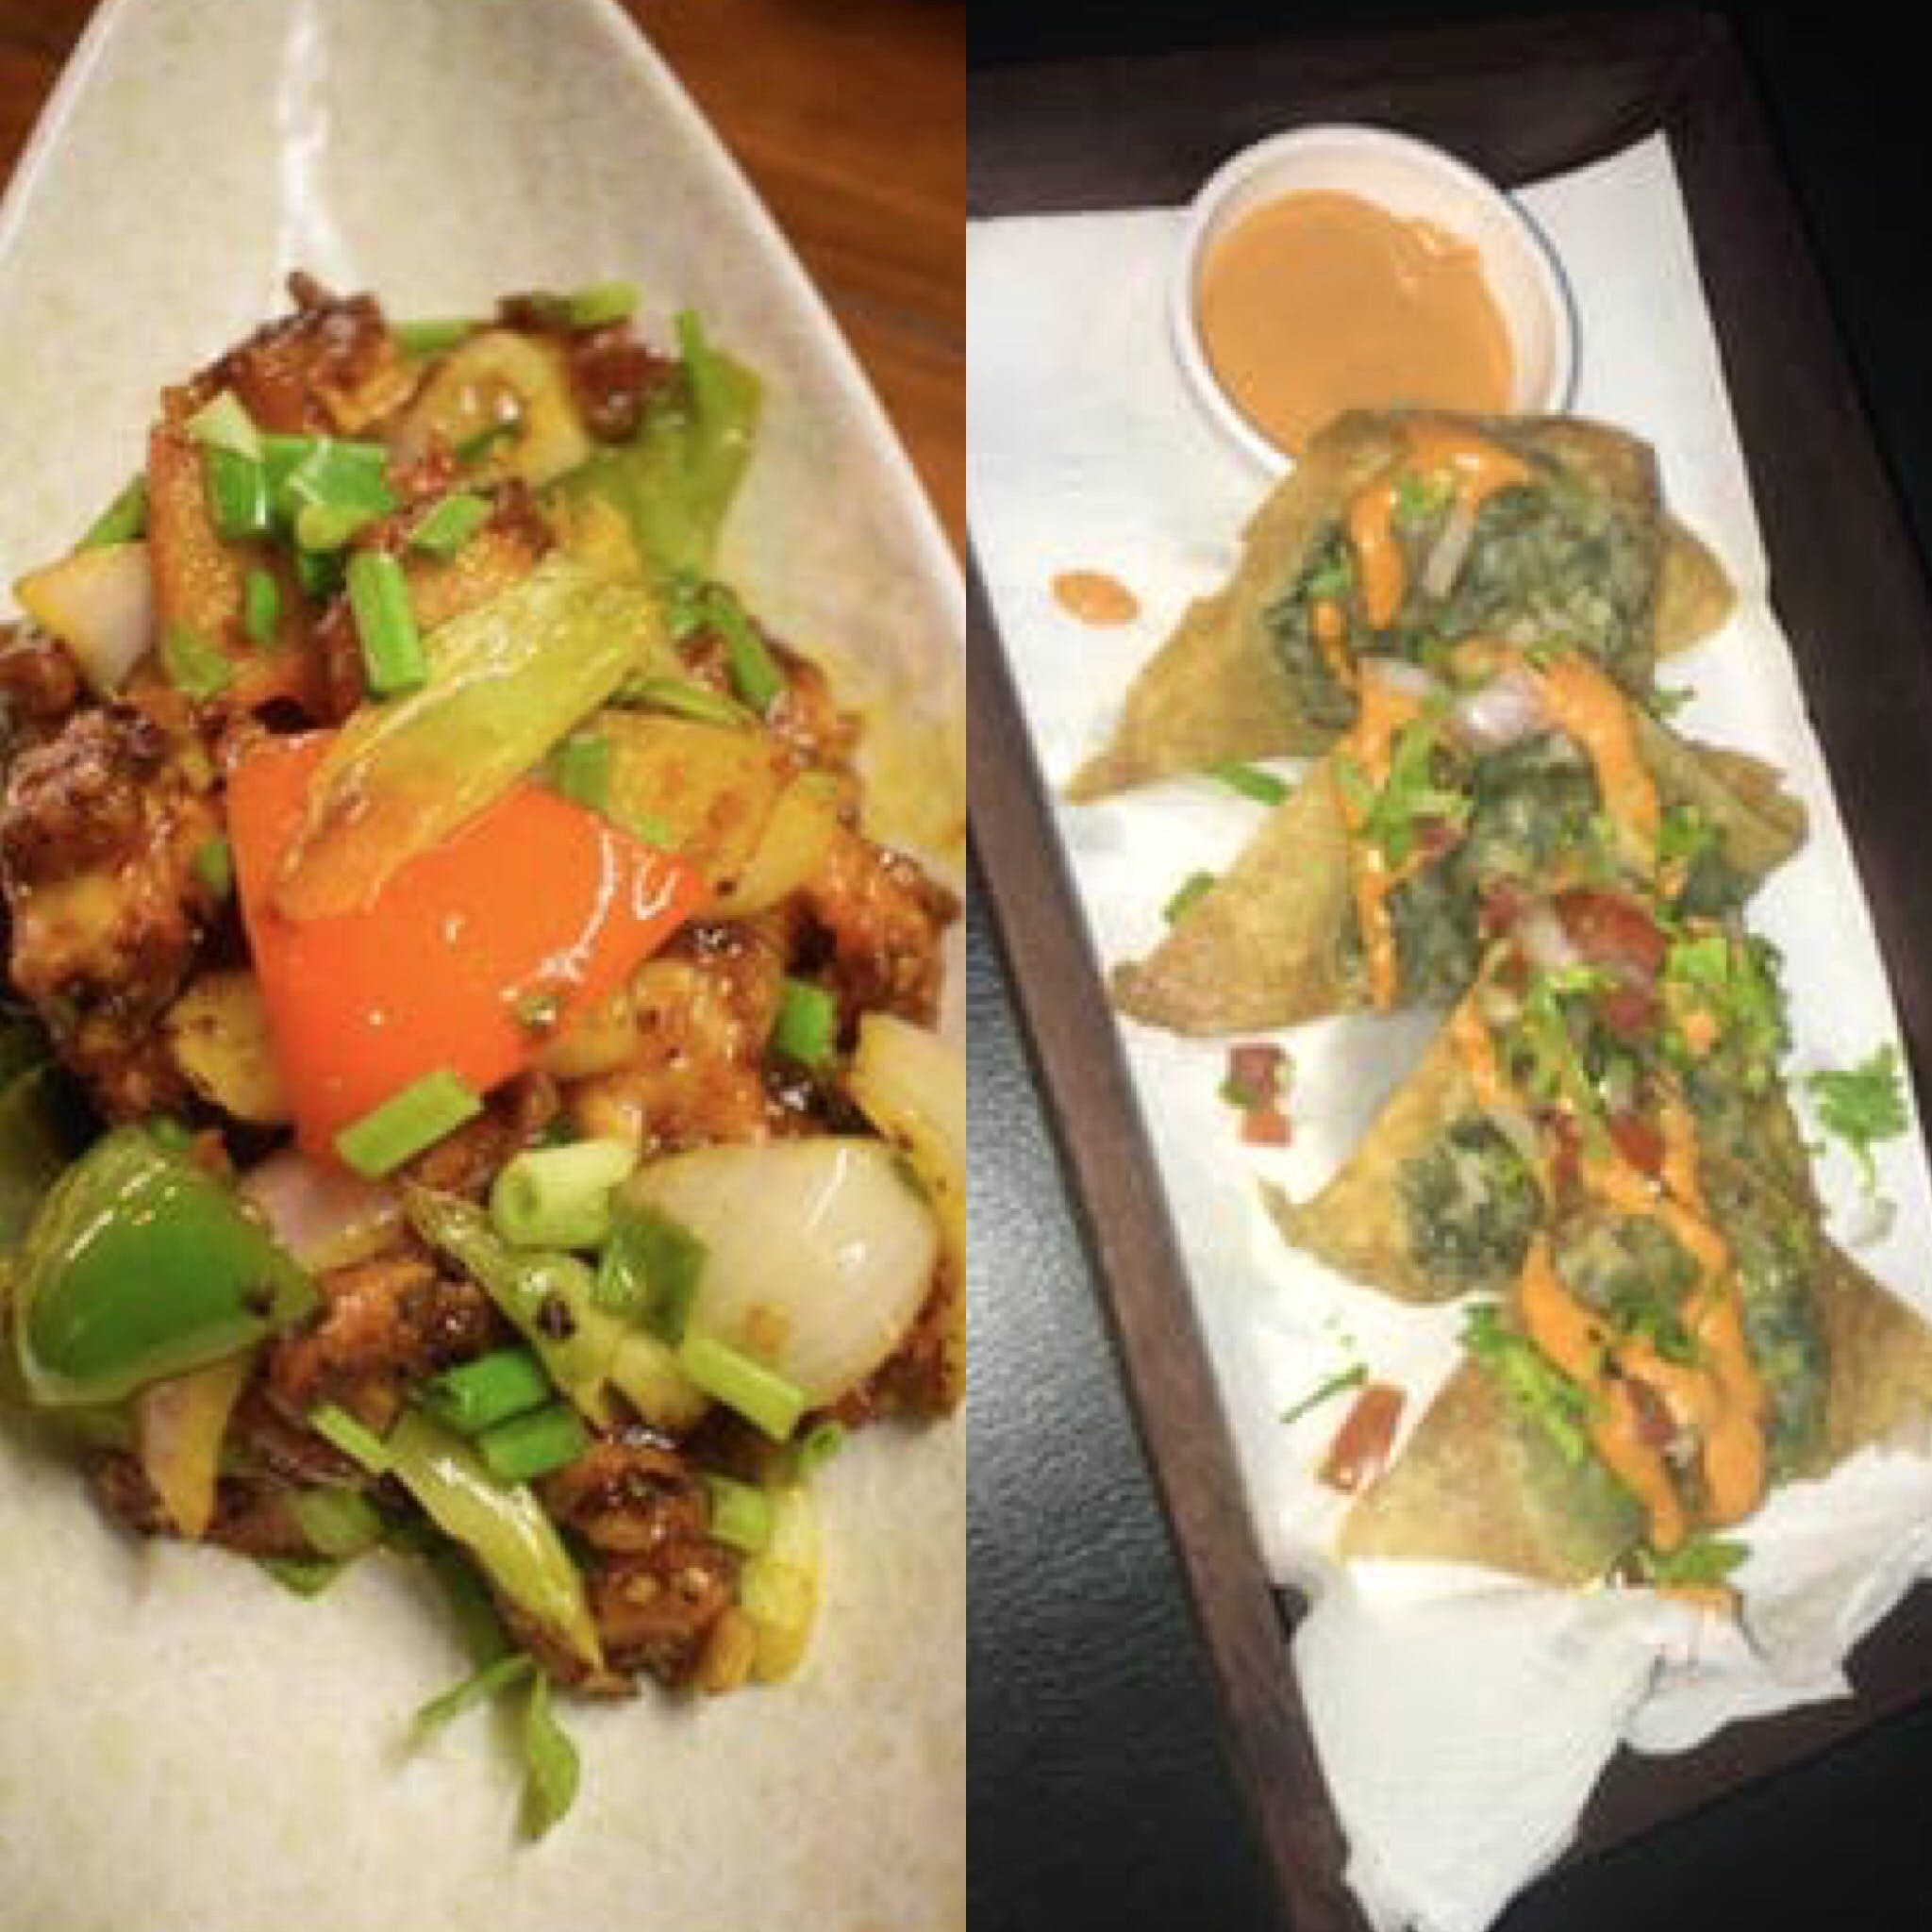 Food,Cuisine,Dish,Ingredient,Taco,Meal,Produce,Lunch,Korean taco,Meat